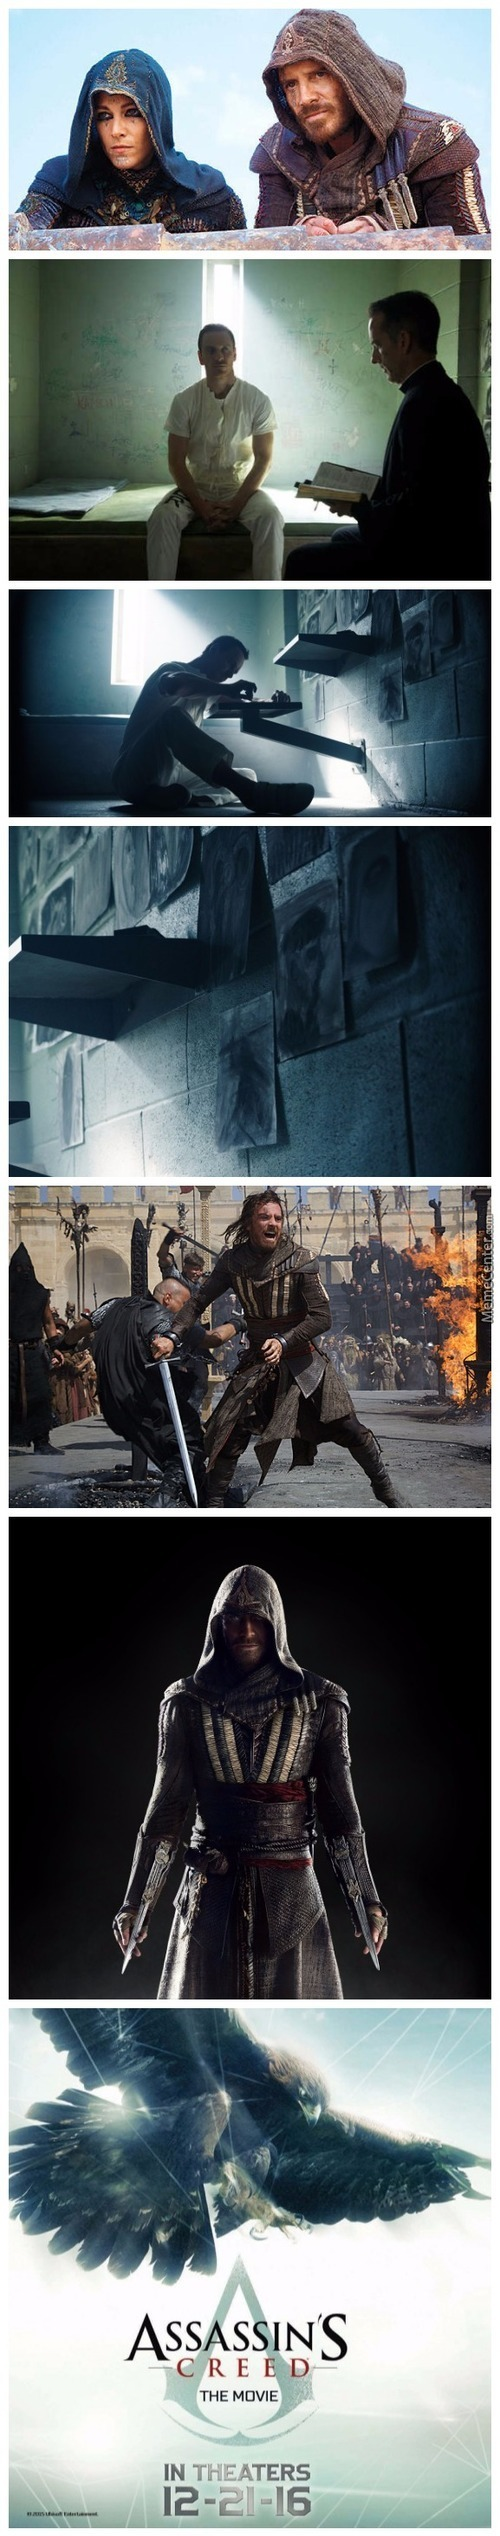 New Image From Upcoming Assassin's Creed Film Released Featuring Michael Fassbender